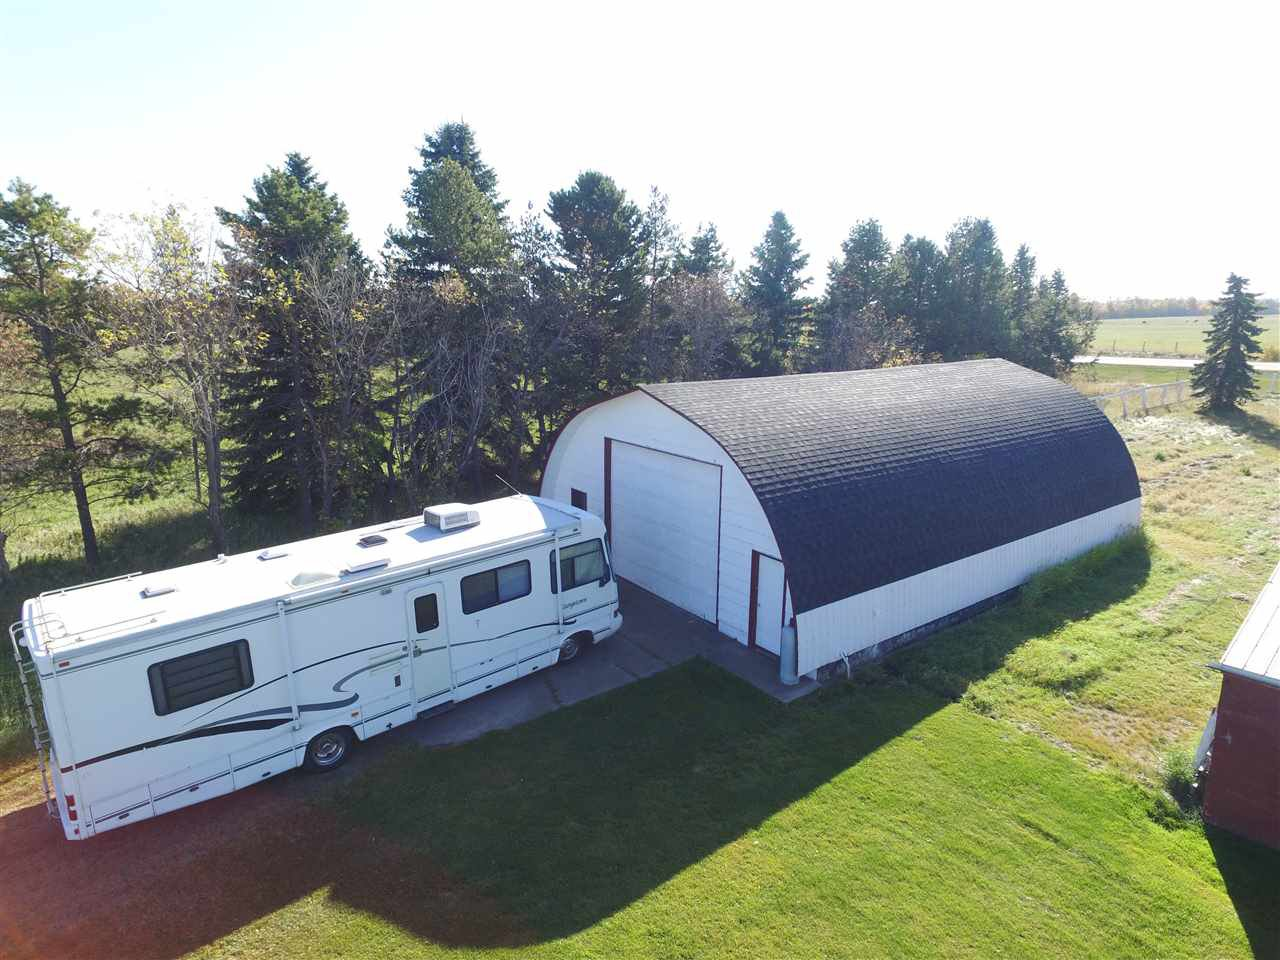 Photo 6: Photos: 273054A Hwy 13: Rural Wetaskiwin County House for sale : MLS®# E4216850